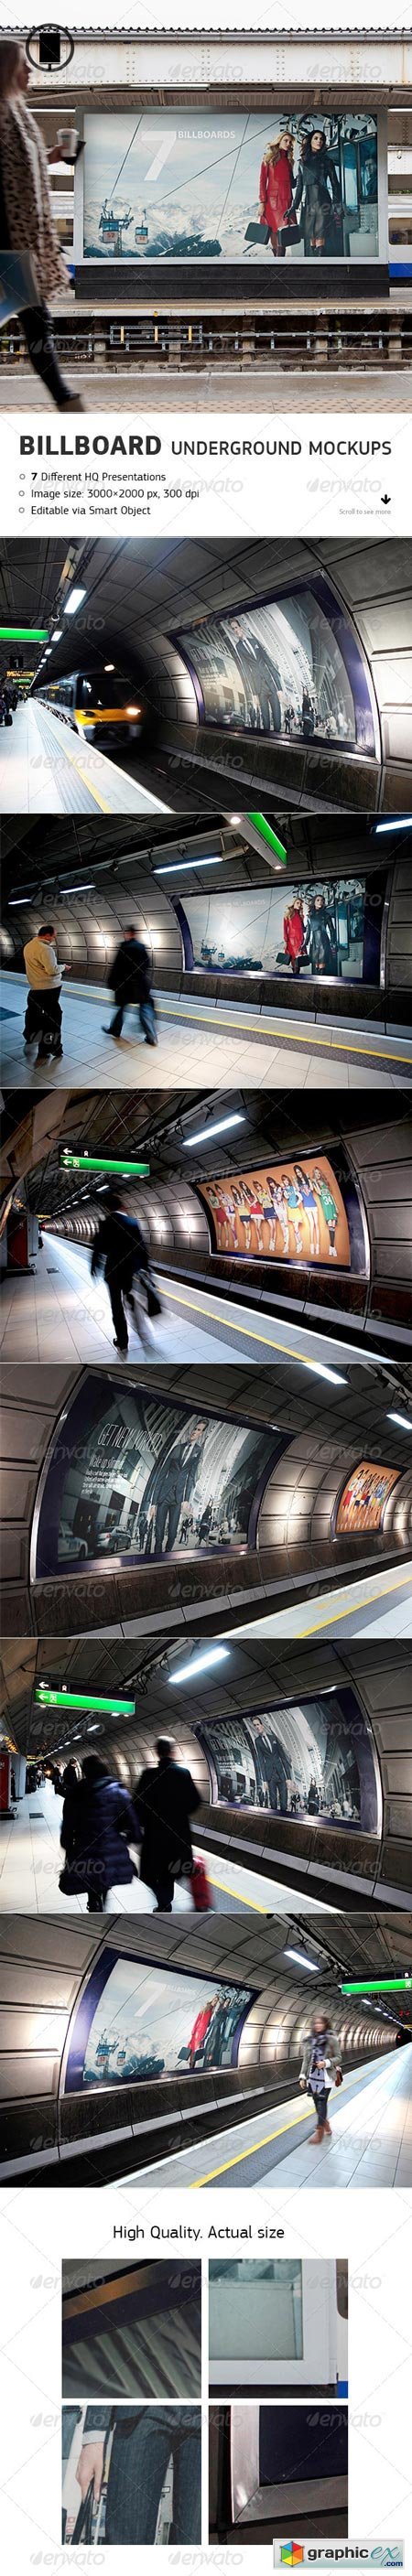 Billboard - Underground, Metro, Subway Mock-Up 8752105